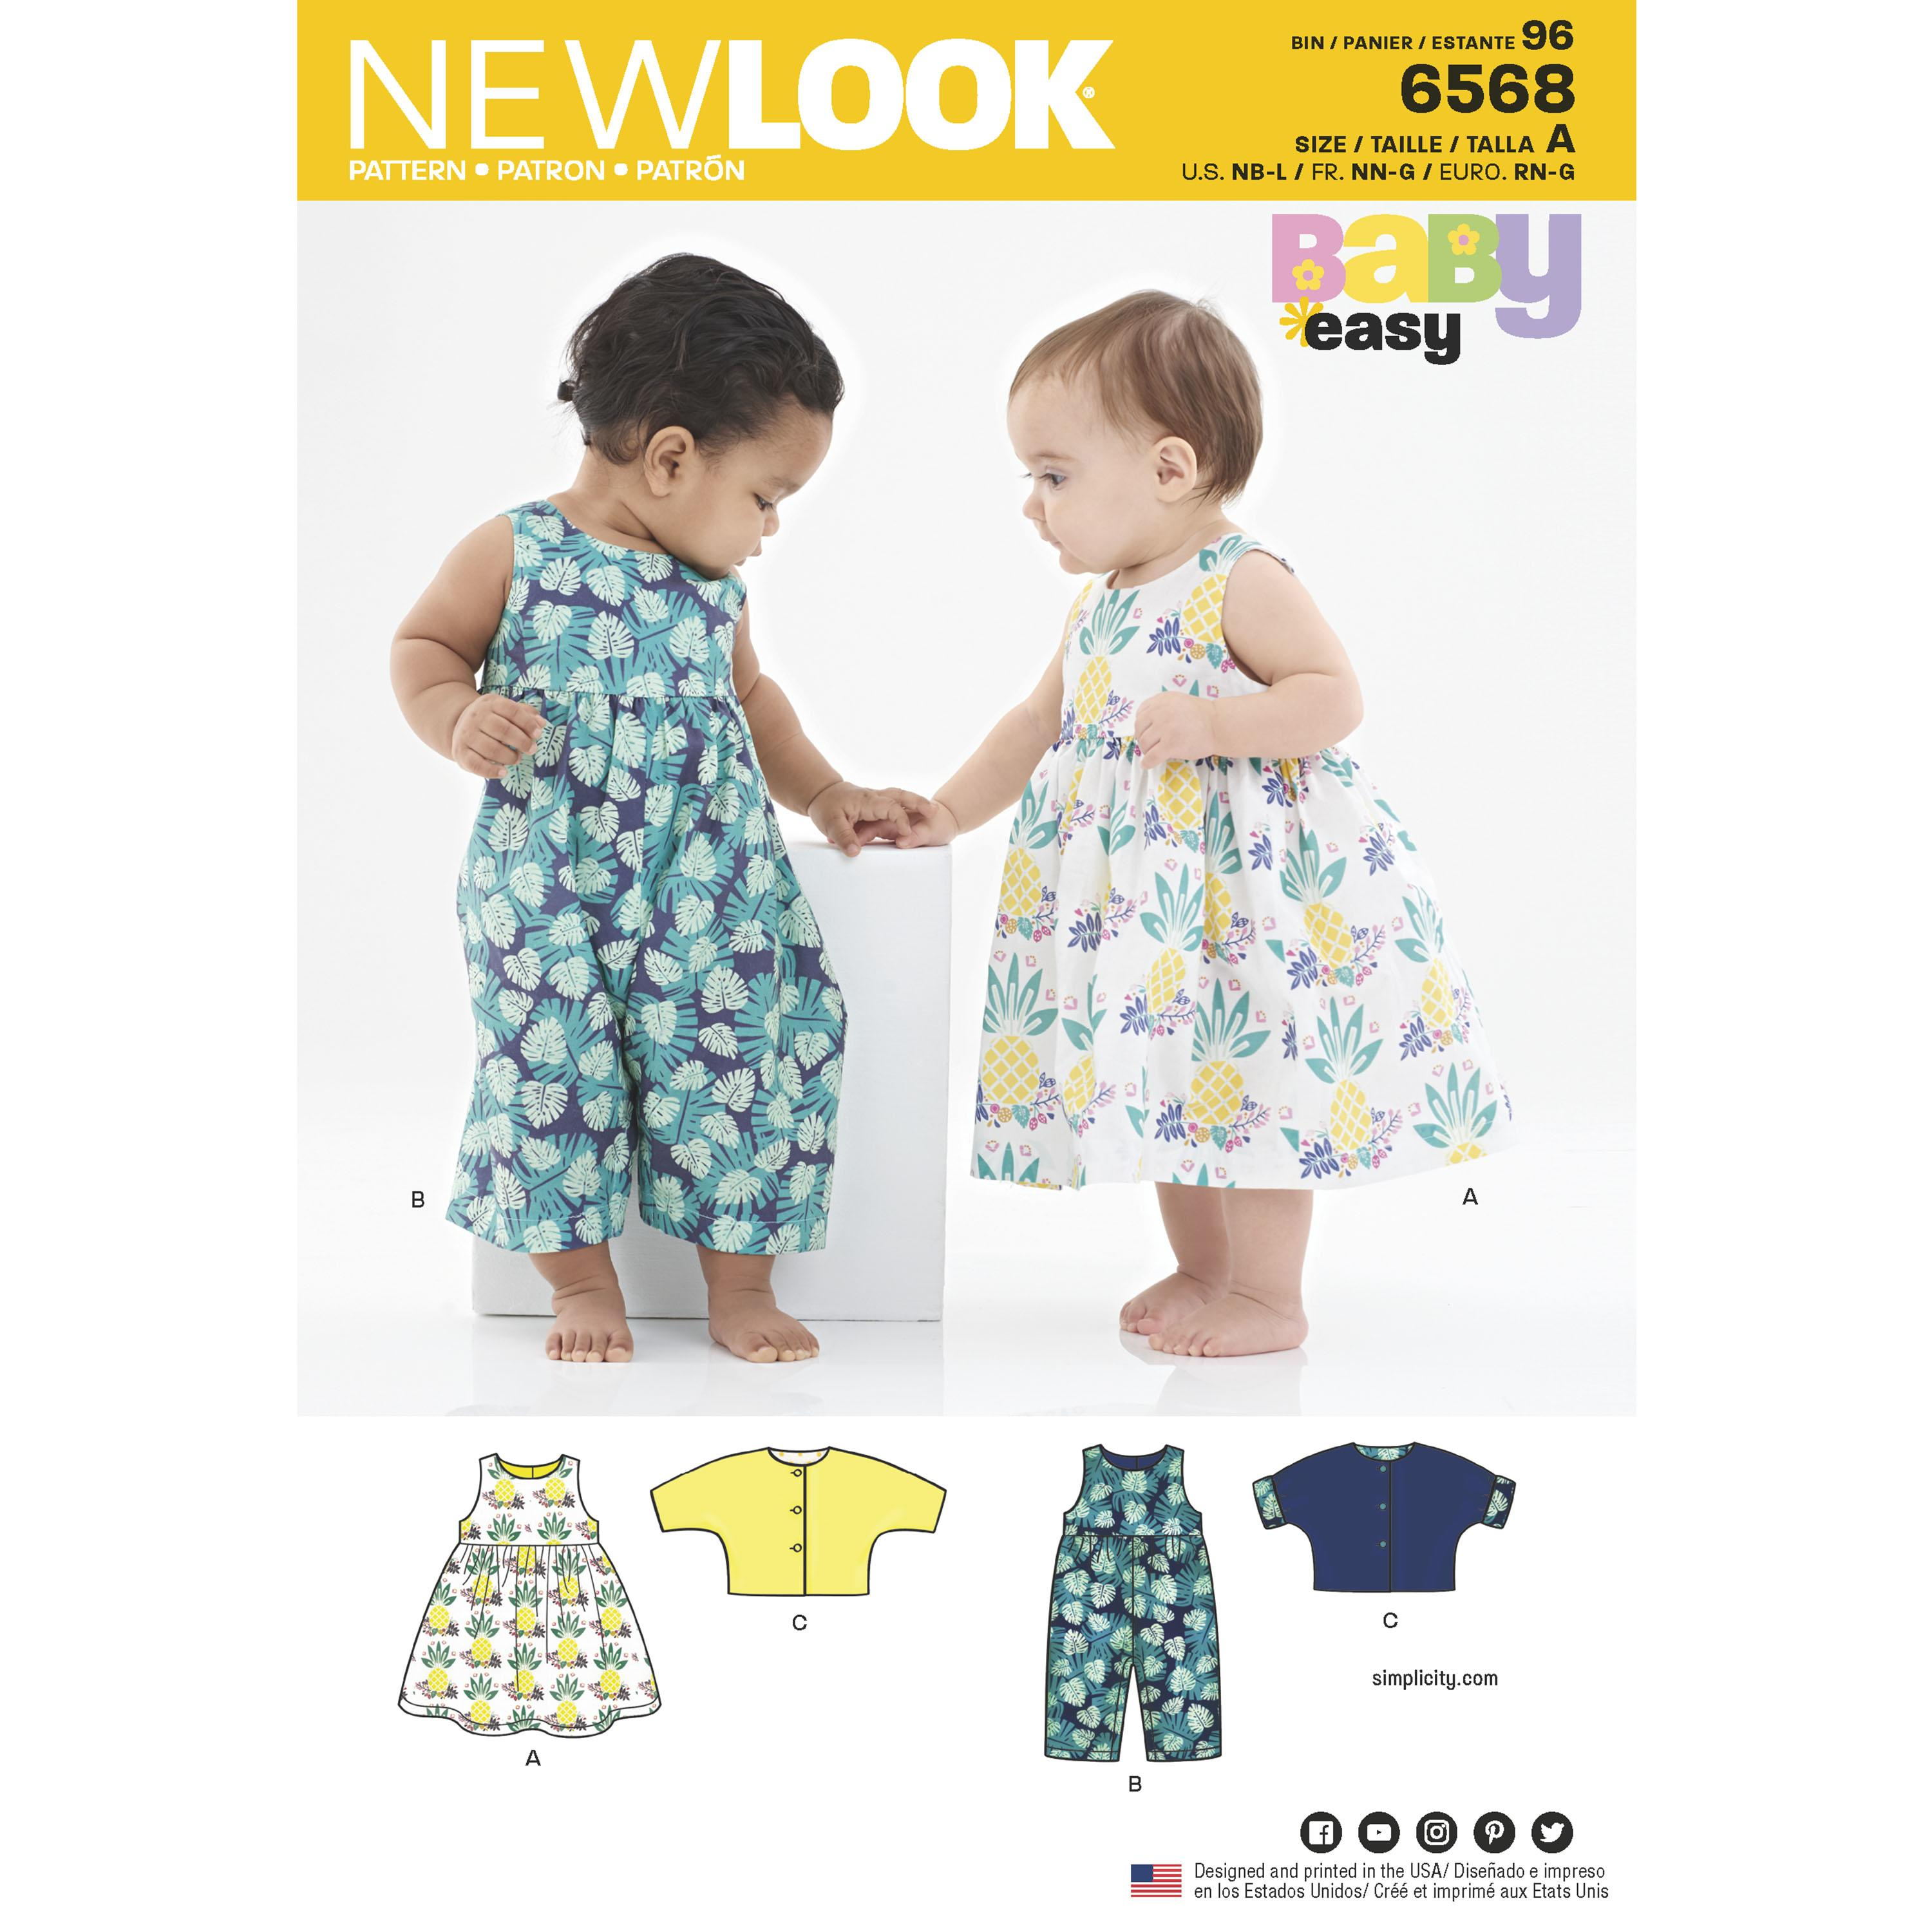 NewLook N6568 Babies' Dress, Romper and Jacket